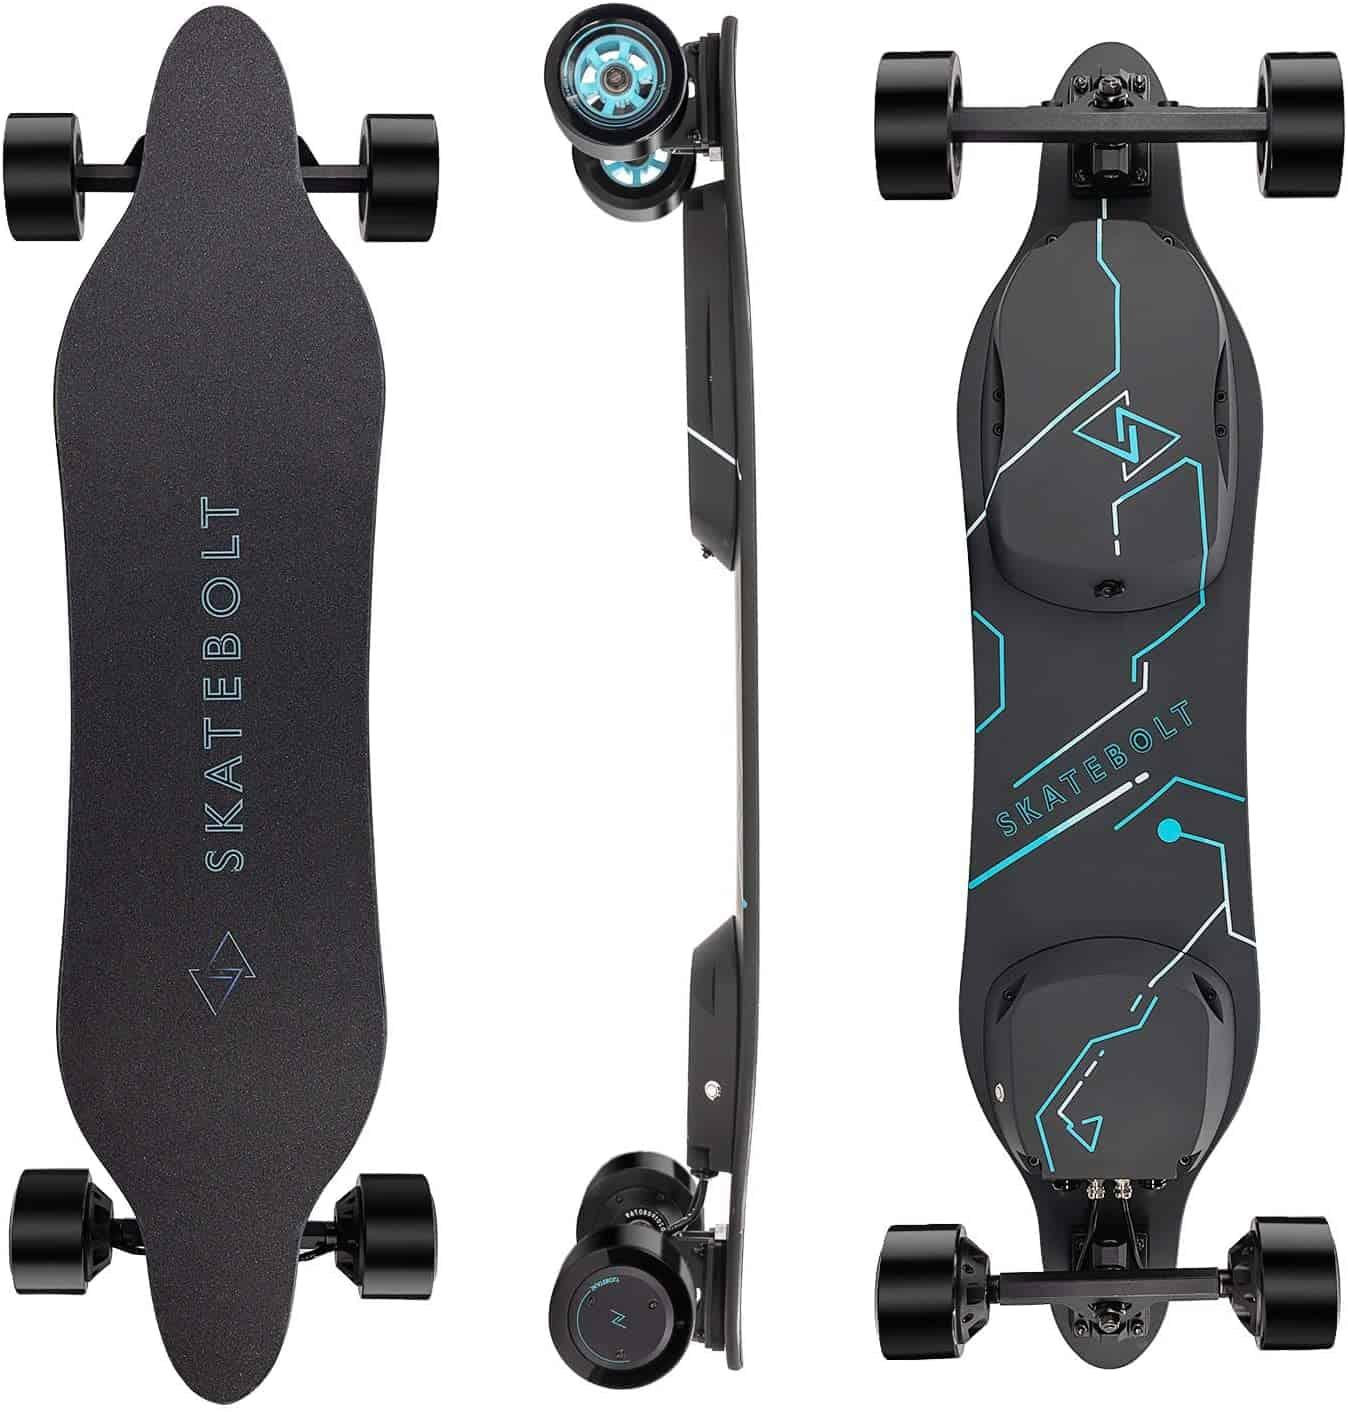 Best Dual Motor Electric Skateboard 2020